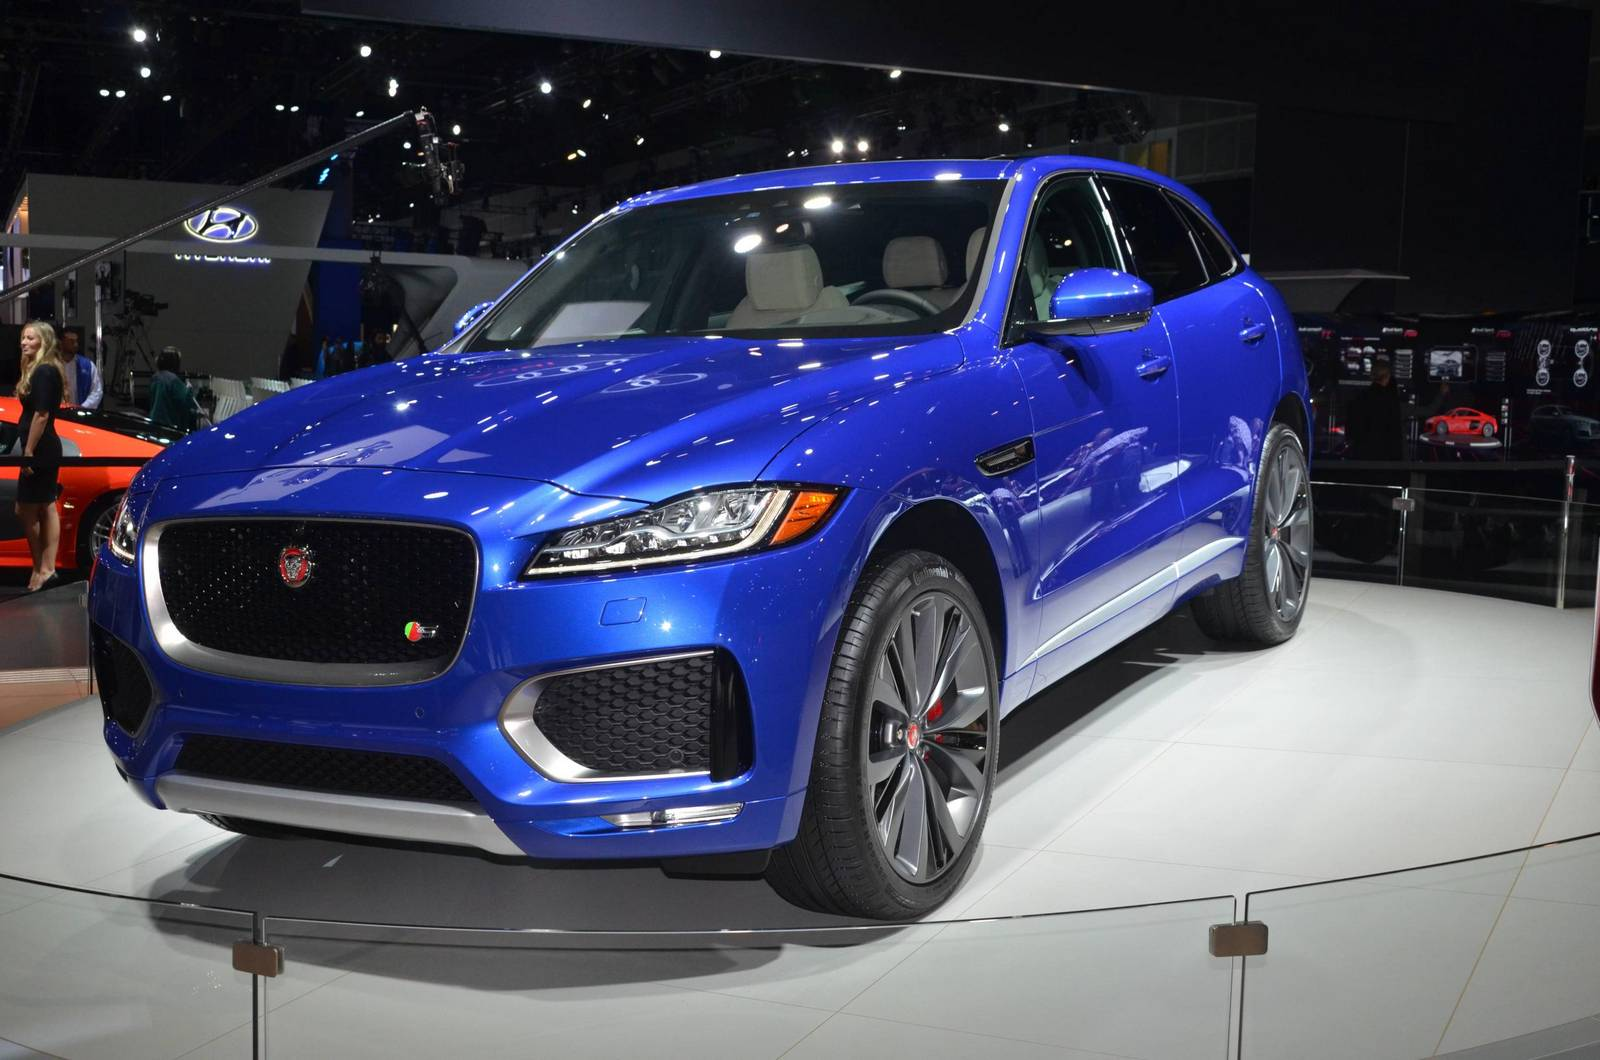 supercharged v8 jaguar f pace by svo on the way gtspirit. Black Bedroom Furniture Sets. Home Design Ideas